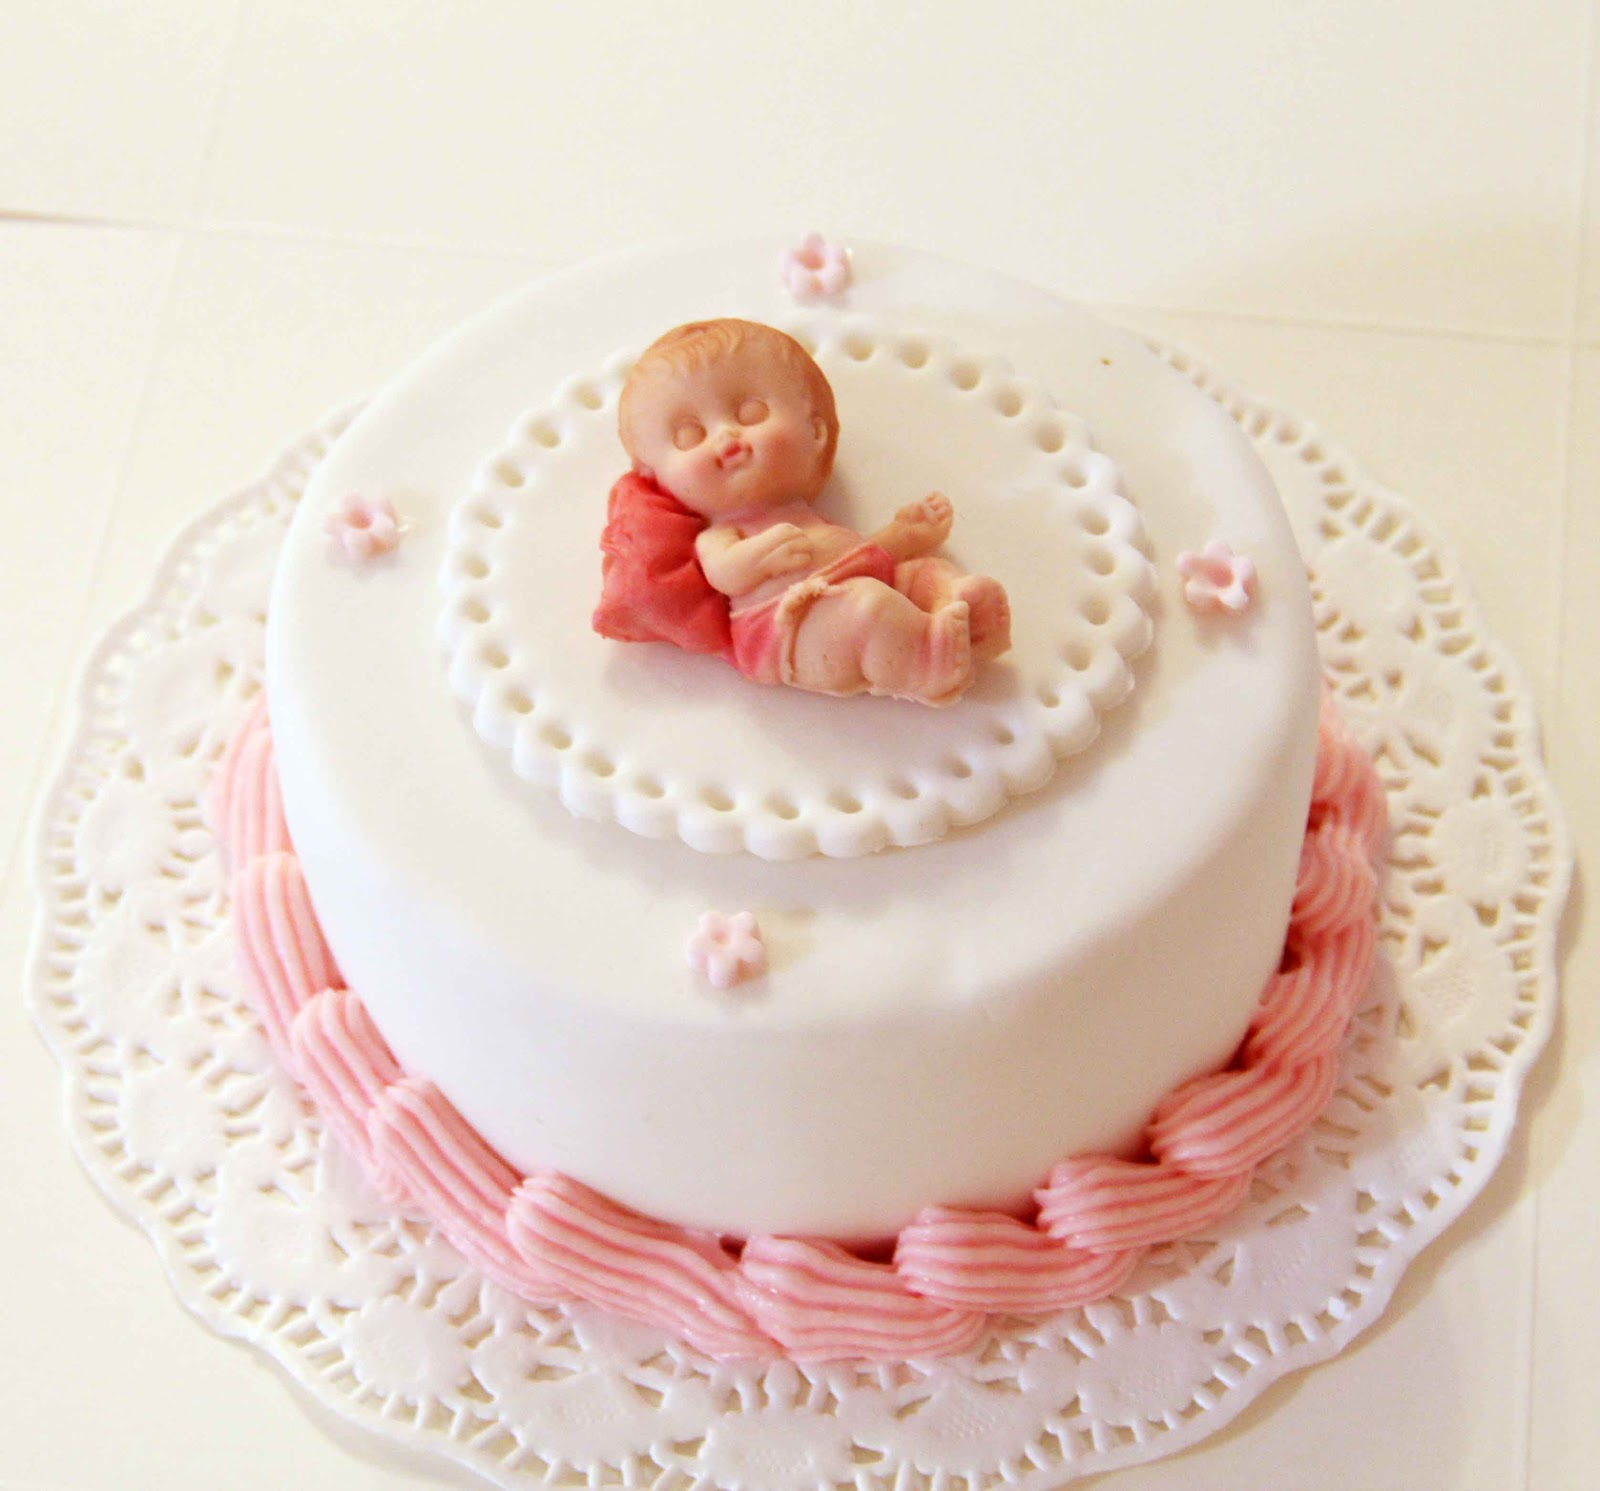 Baby Cake For A Month Old Celebration